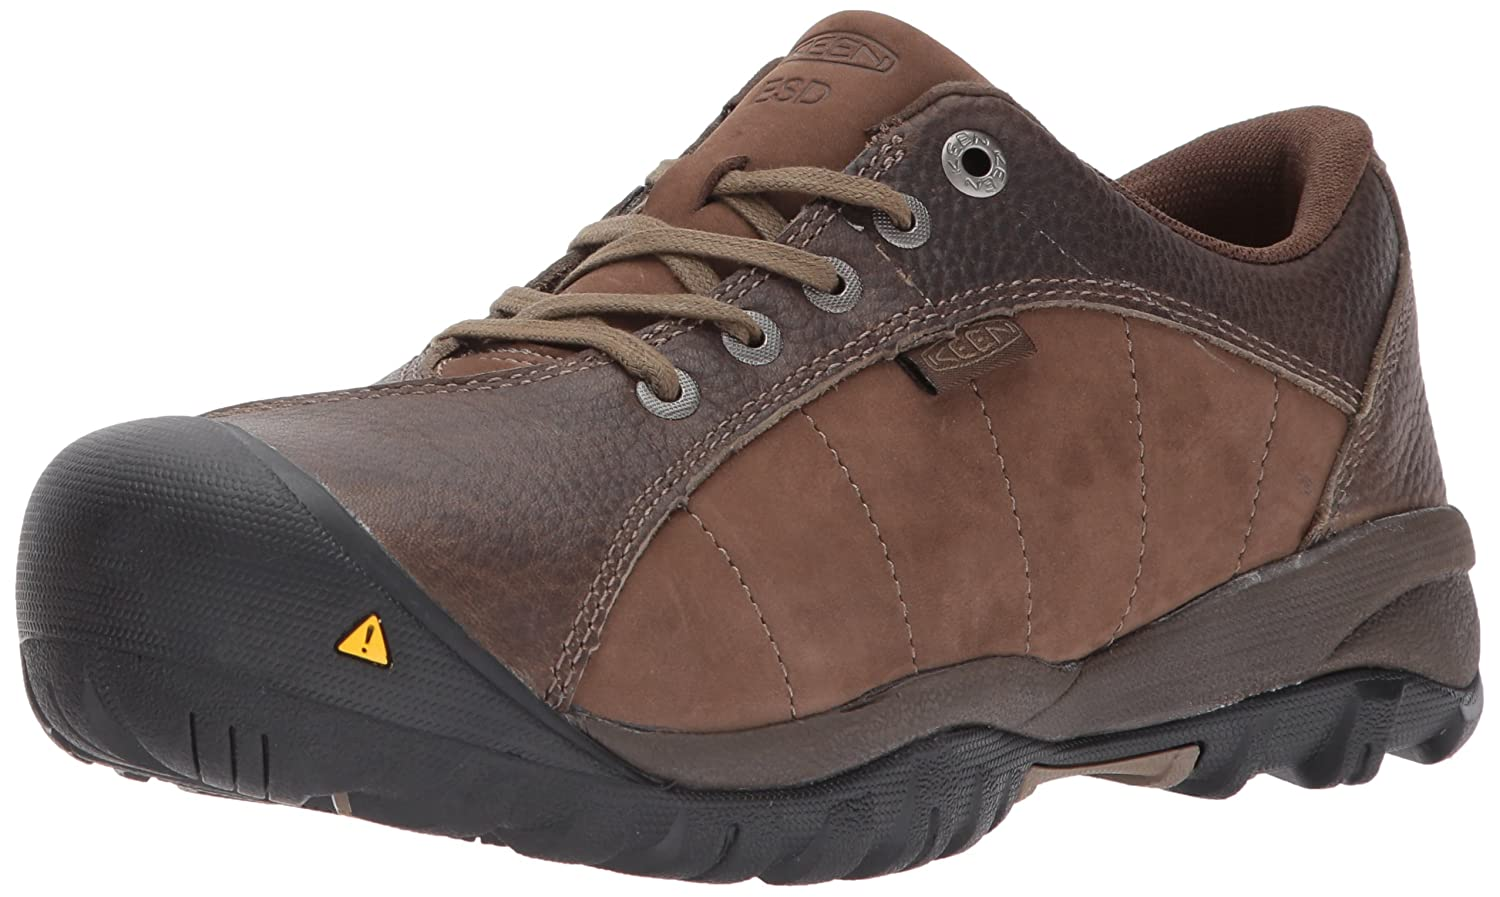 KEEN Utility Women's Santa FE at ESD Industrial and Construction Shoe B01N4LGQPO 10.5 W US|Cascade Brown/Shiitake